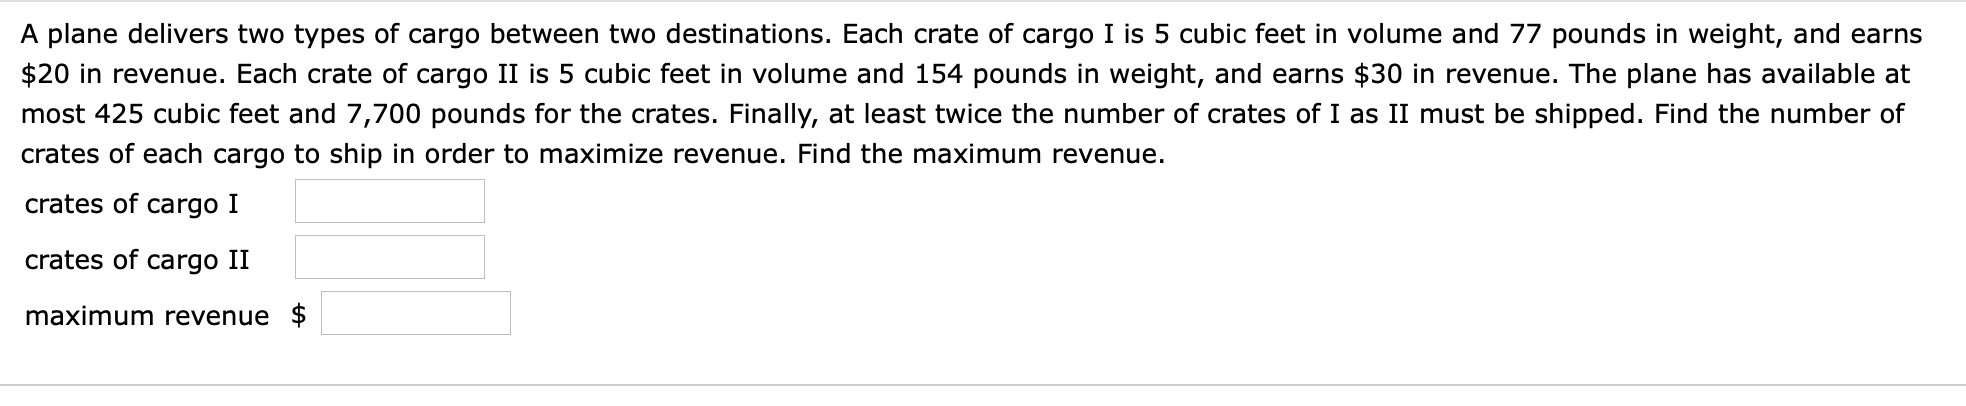 A plane delivers two types of cargo between two destinations. Each crate of cargo I is 5 cubic feet in volume and 77 pounds in weight, and earns $20 in revenue. Each crate of cargo II is 5 cubic feet in volume and 154 pounds in weight, and earns $30 in revenue. The plane has available at most 425 cubic feet and 7,700 pounds for the crates. Finally, at least twice the number of crates of I as II must be shipped. Find the number of crates of each cargo to ship in order to maximize revenue. Find the maximum revenue crates of cargo I crates of cargo II maximum revenue $